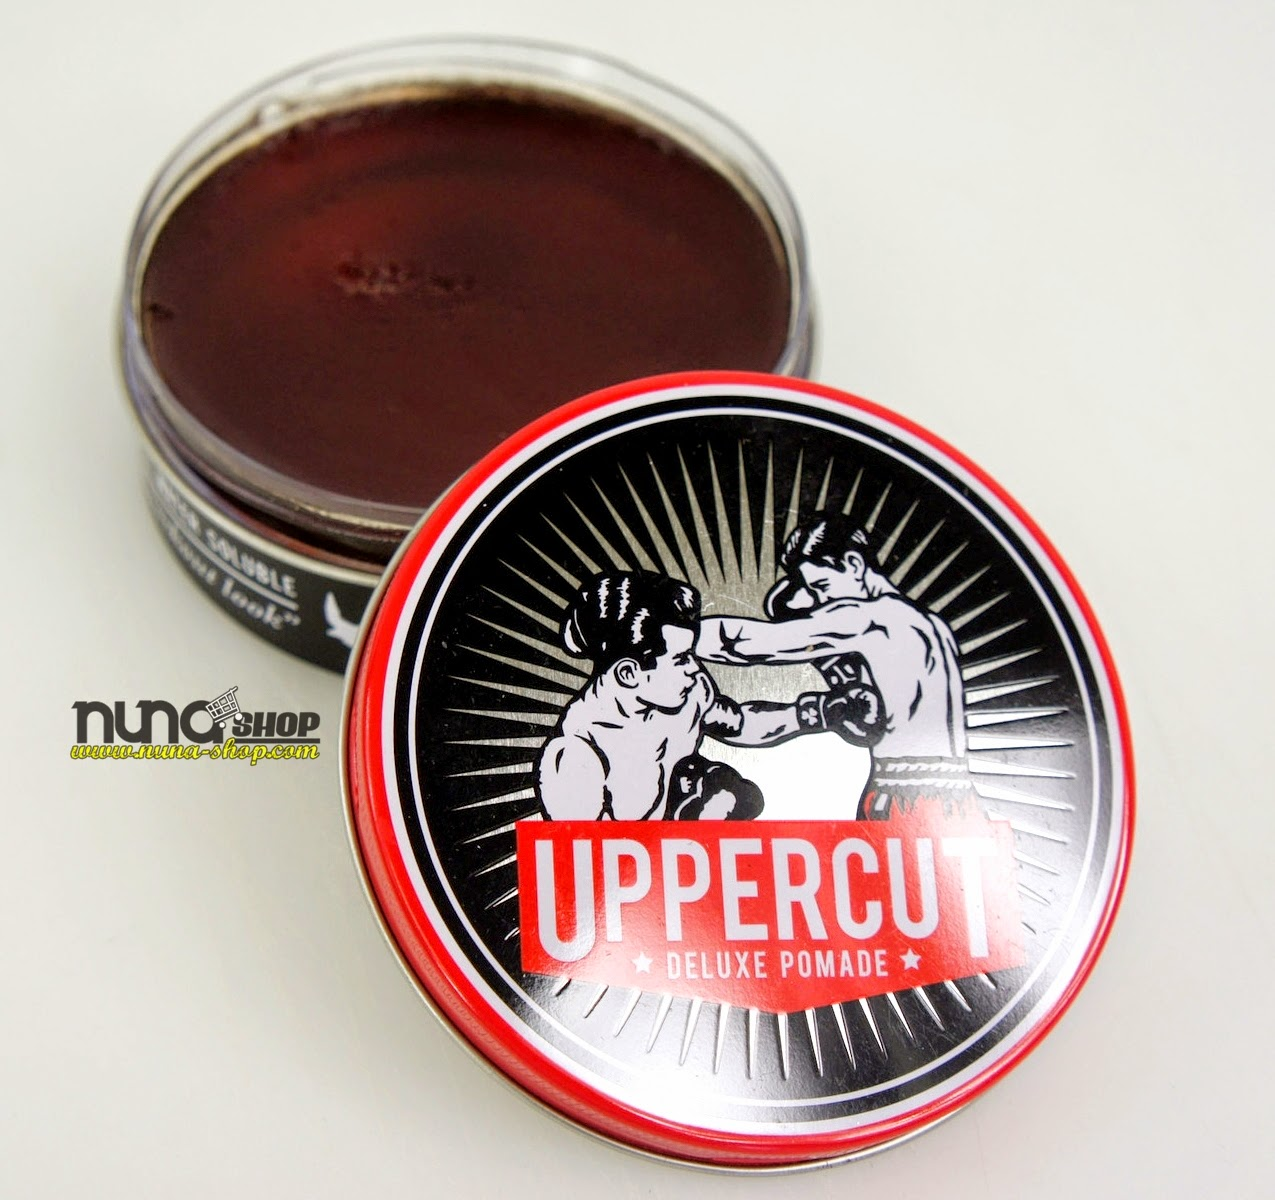 UPPERCUT DELUXE POMADE 3.5OZ MADE IN AUSTRALIA